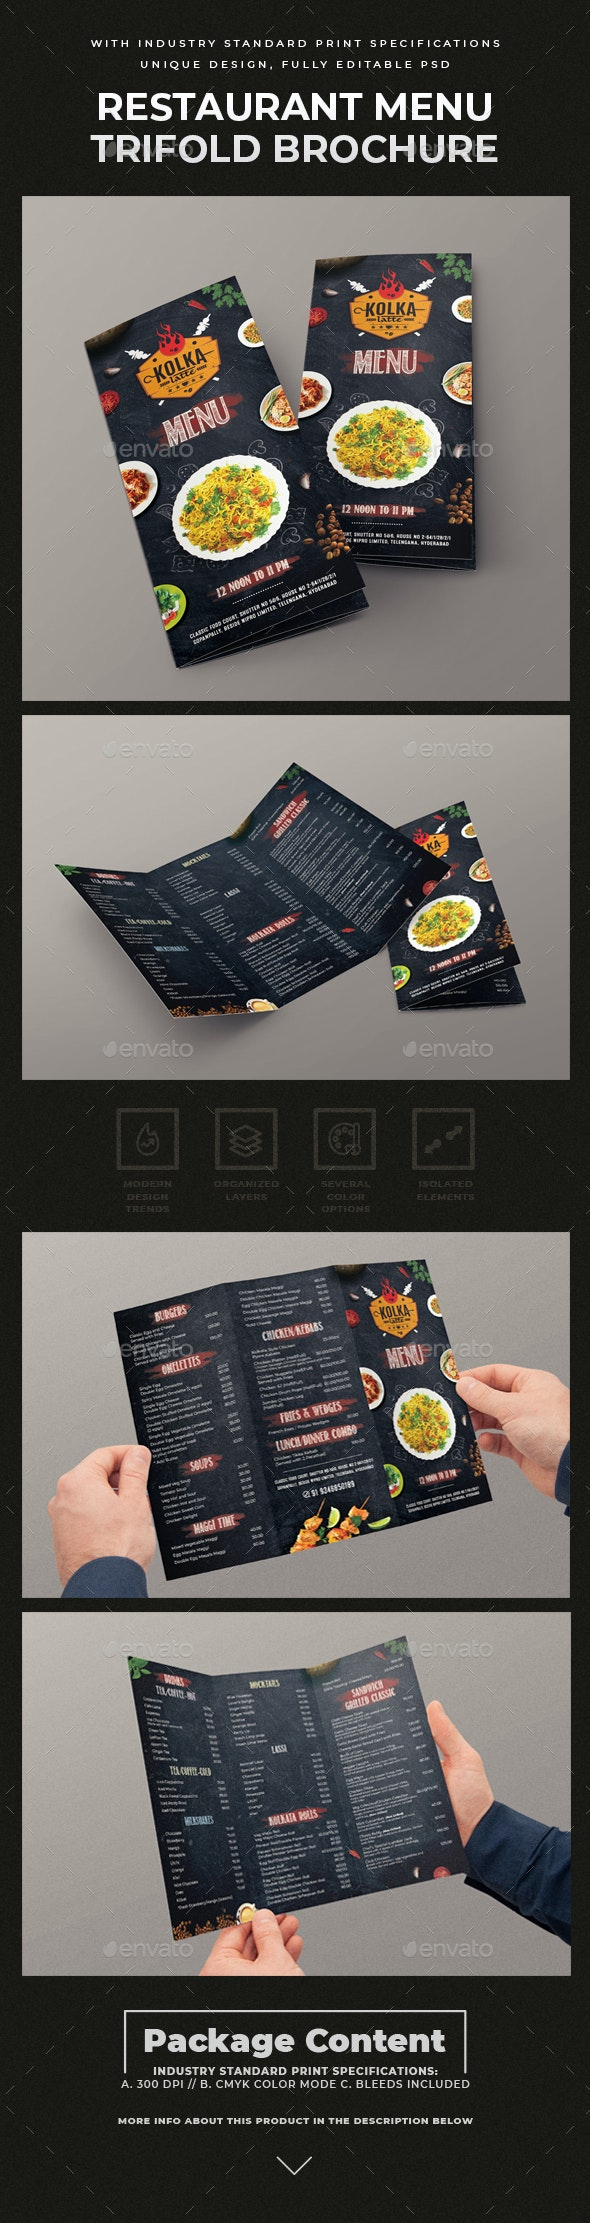 Trifold Restaurant Menu Template - Restaurant Flyers